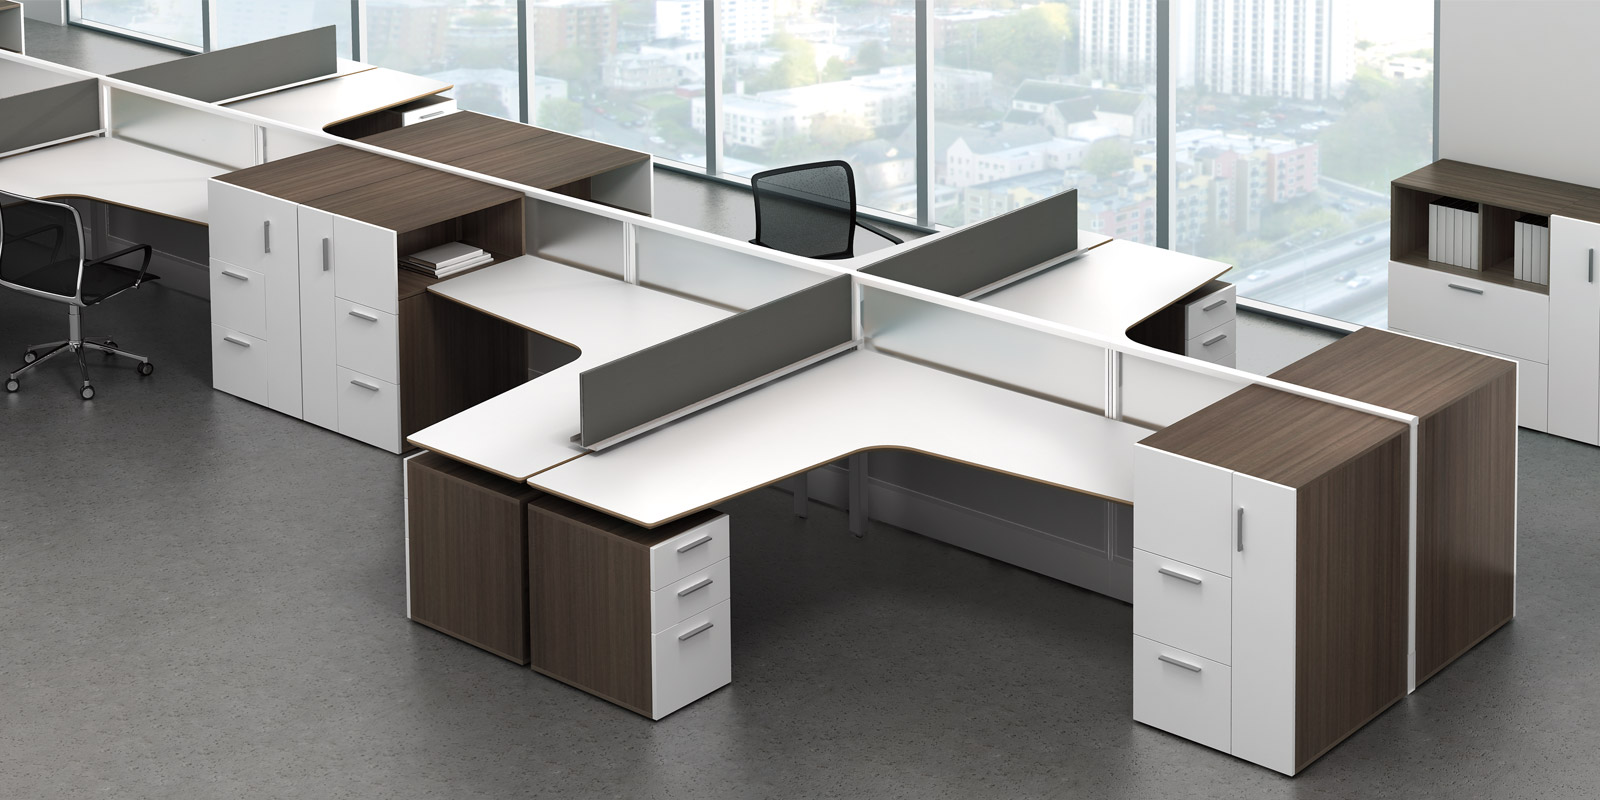 modular office furniture watson m2 modular workstations reaoqwq